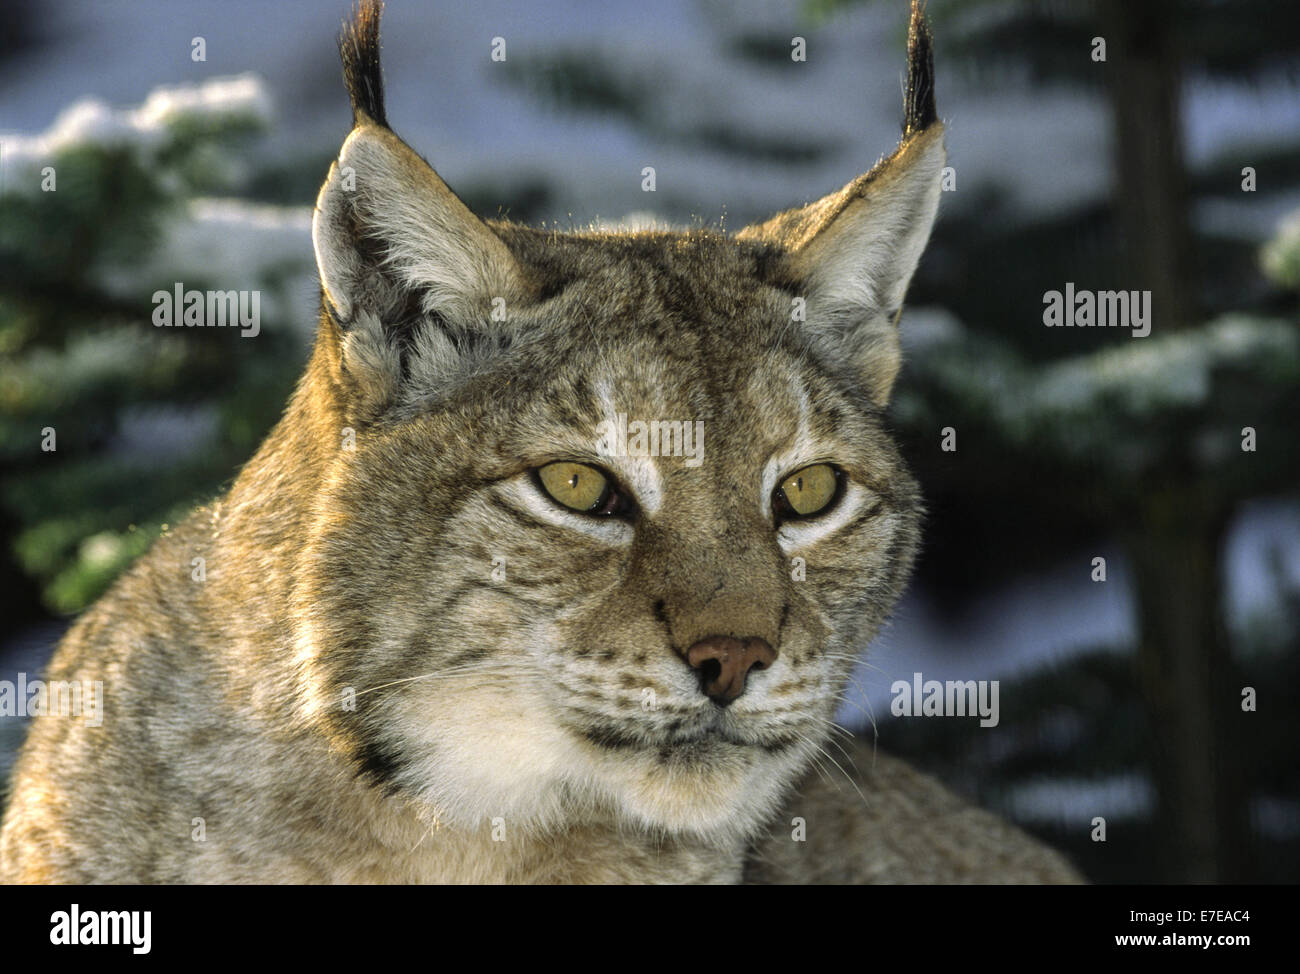 EURASIAN  LYNX IN THE PINES WITH SNOW A  PORTRAIT - Stock Image